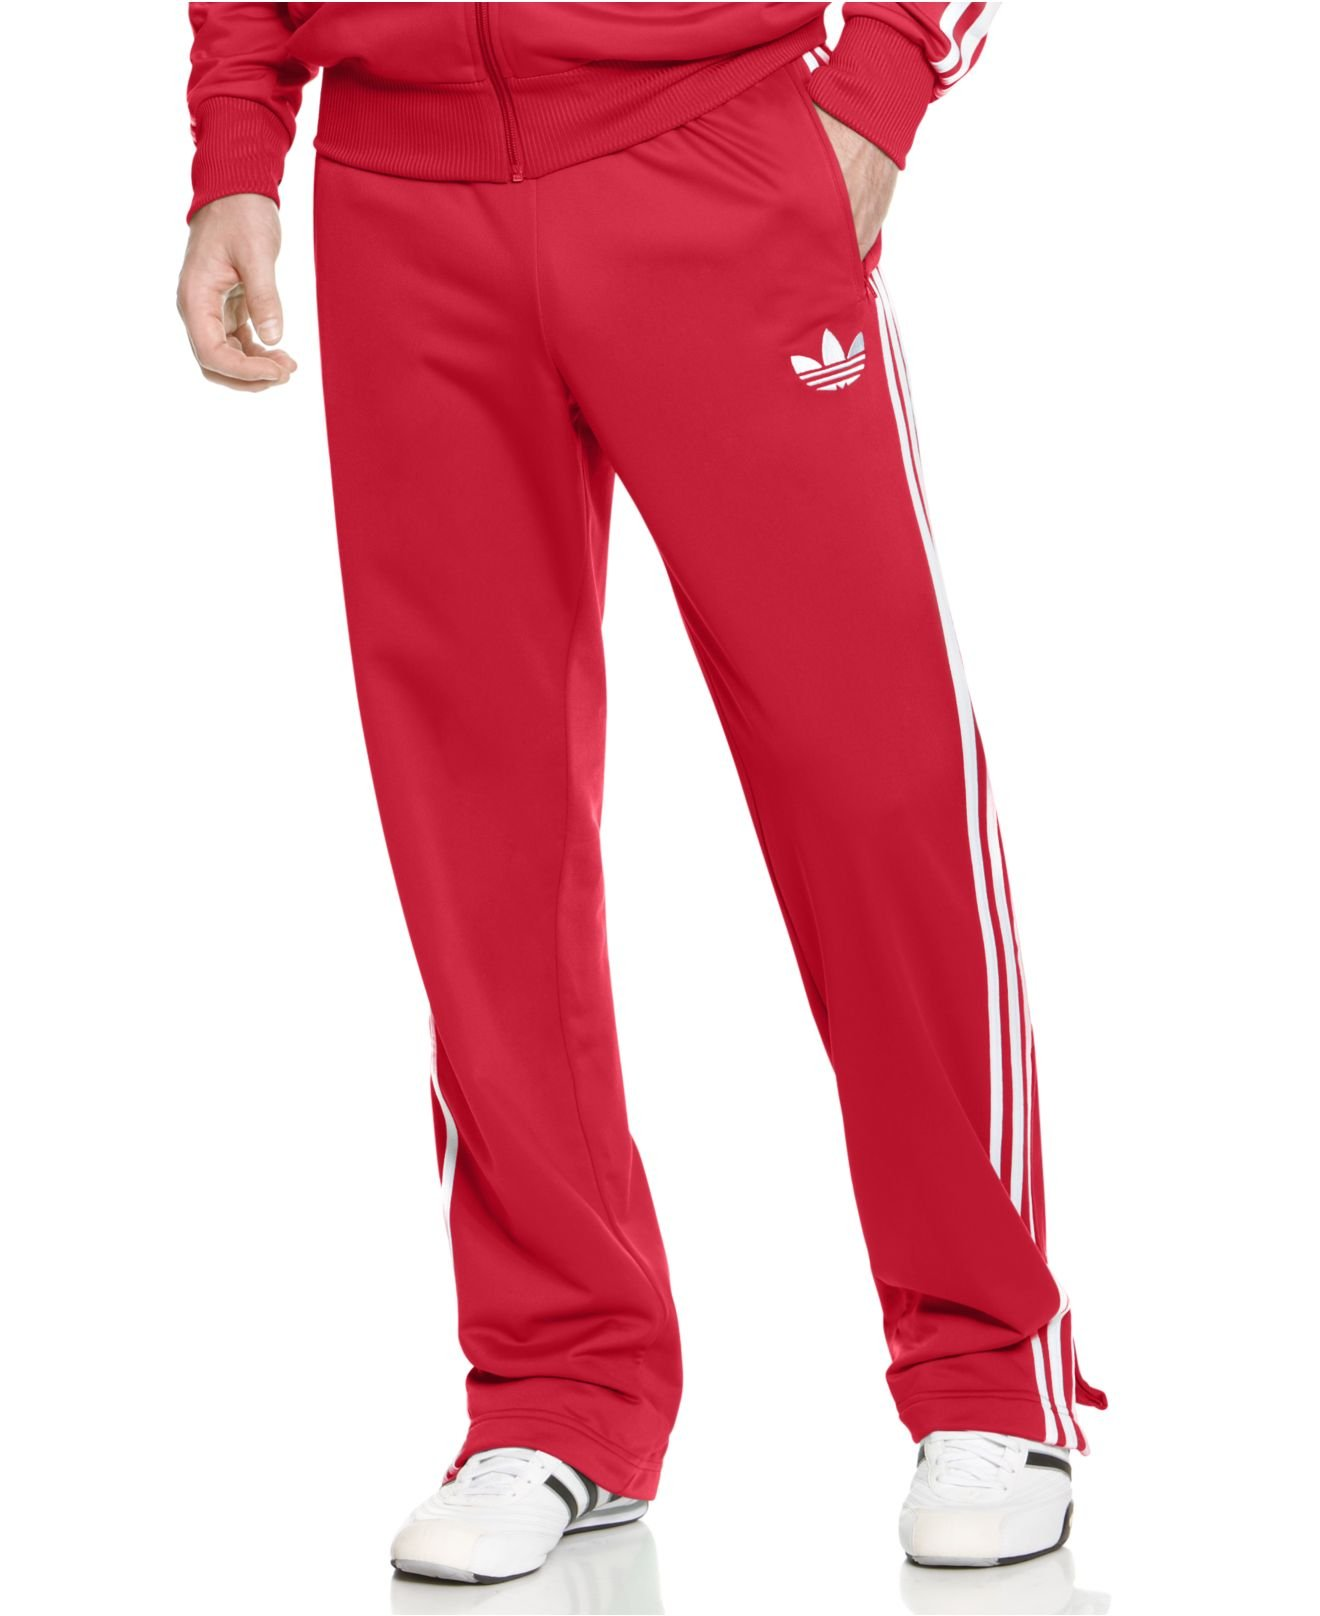 ad6ecb6c1 adidas Adi Firebird Track Pants in Red for Men - Lyst